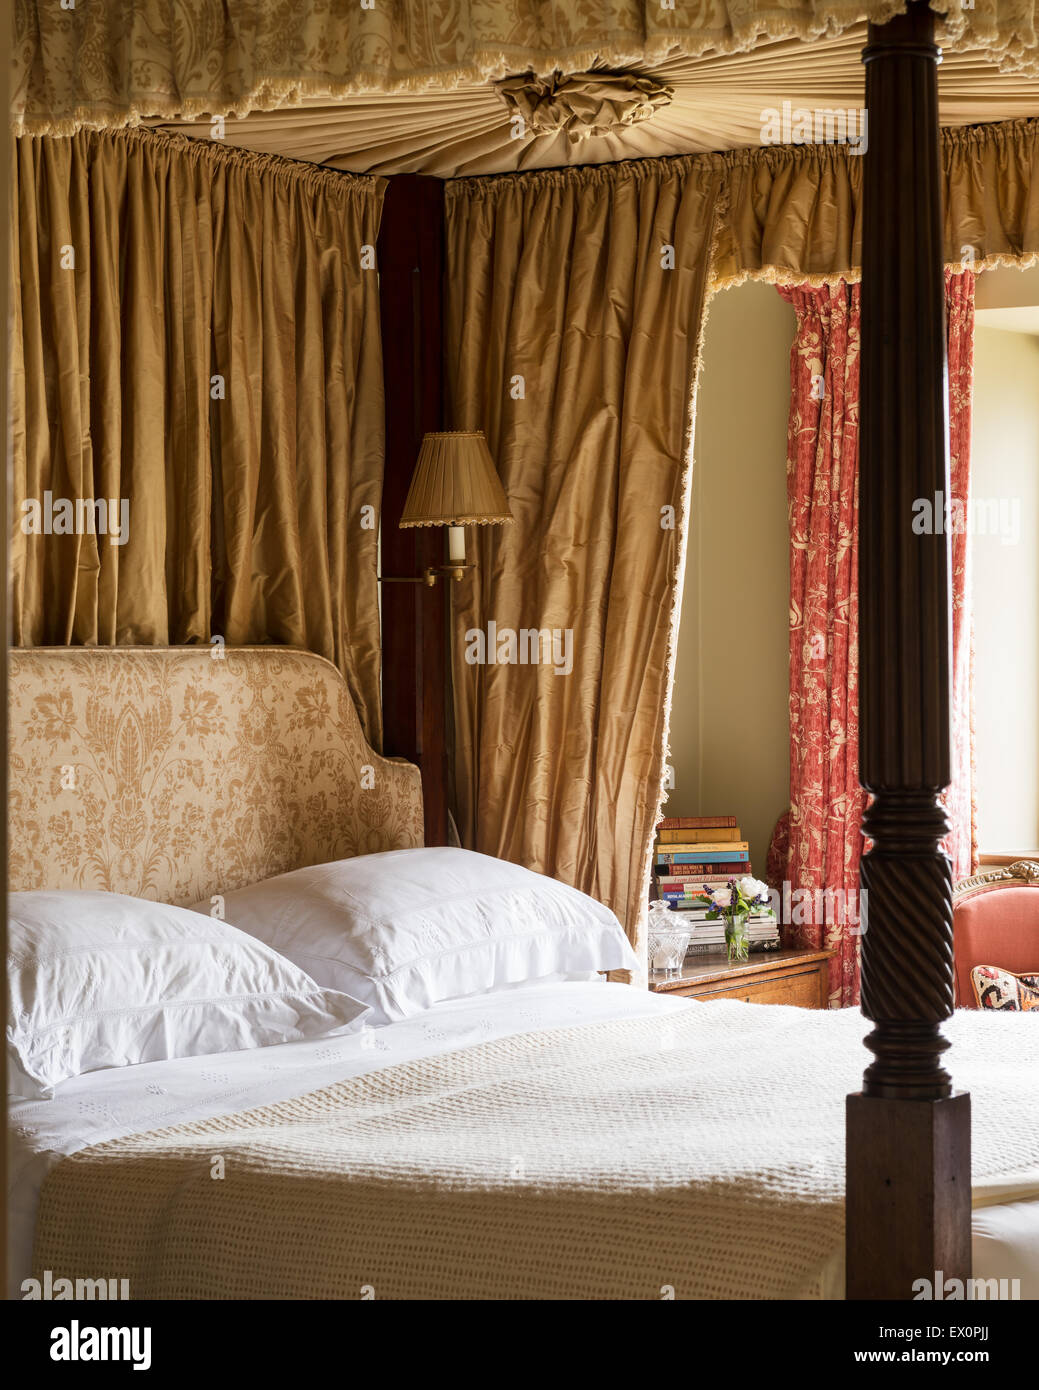 Georgian four poster bed in bedroom with toile de jouy curtains Stock Photo